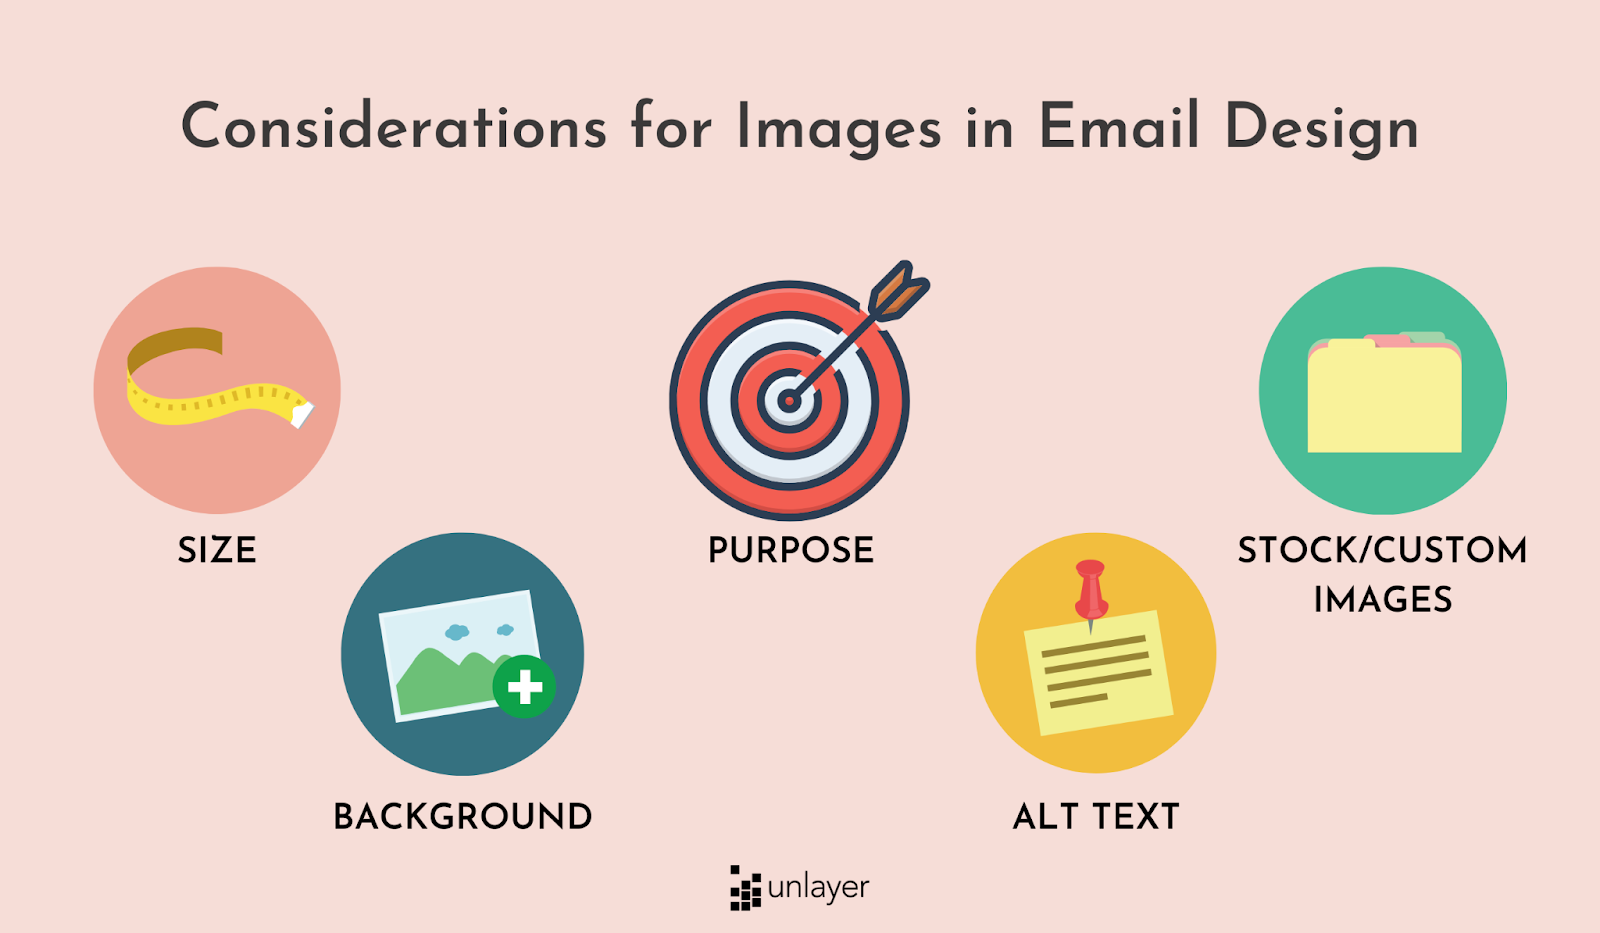 Images in email design